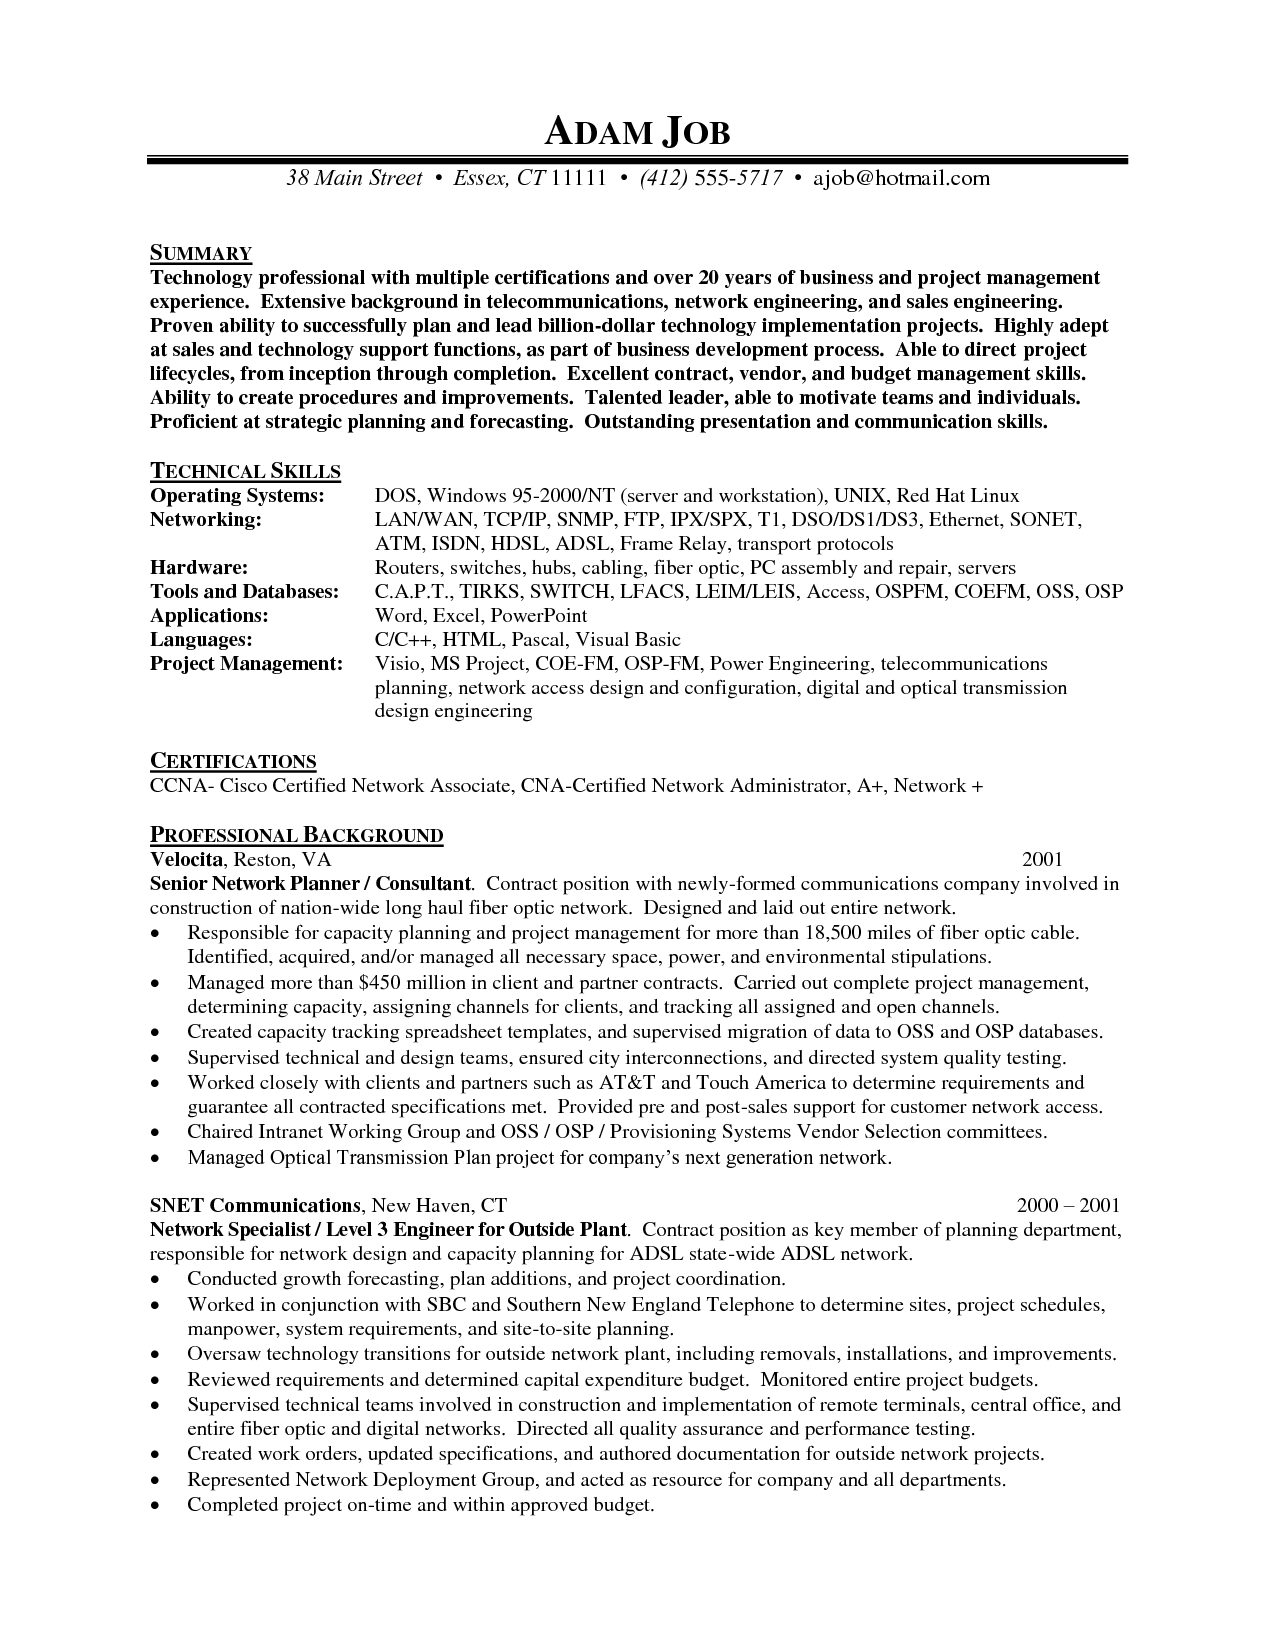 cisco network engineer sample resume debt advisor cover letter sample network engineer resume - Cisco Network Engineer Sample Resume